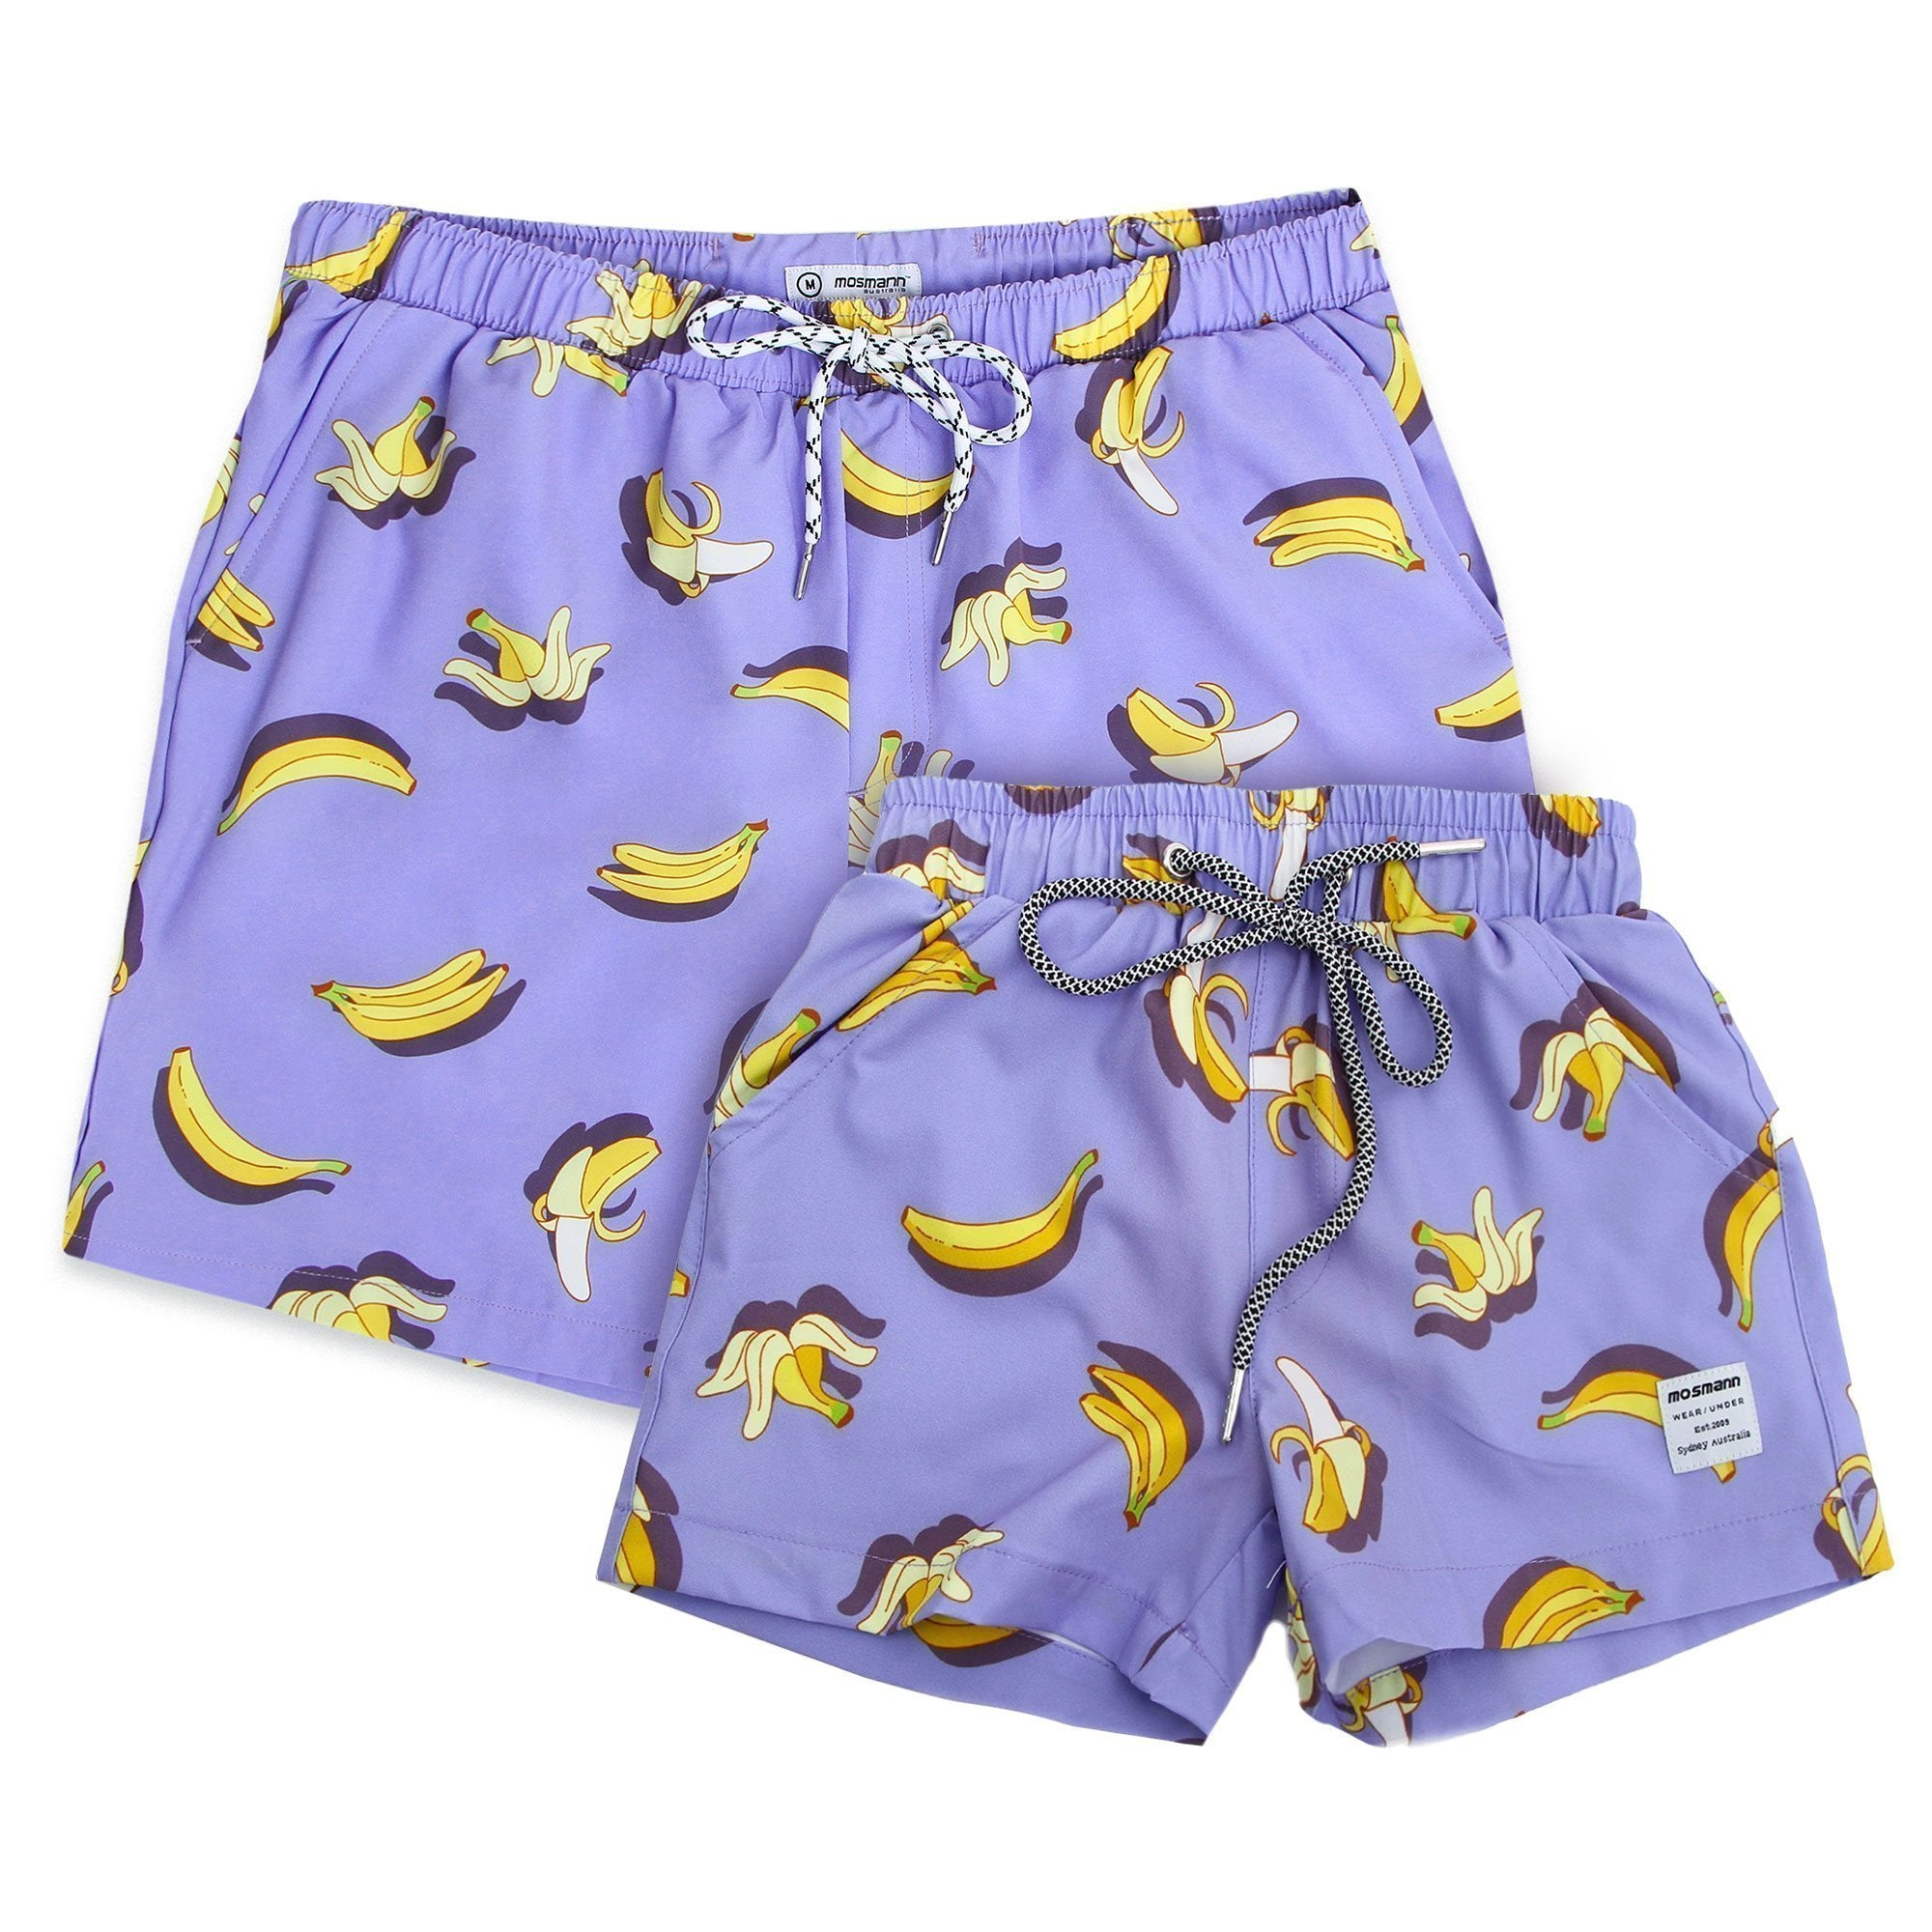 Men's and children's matching swim shorts set